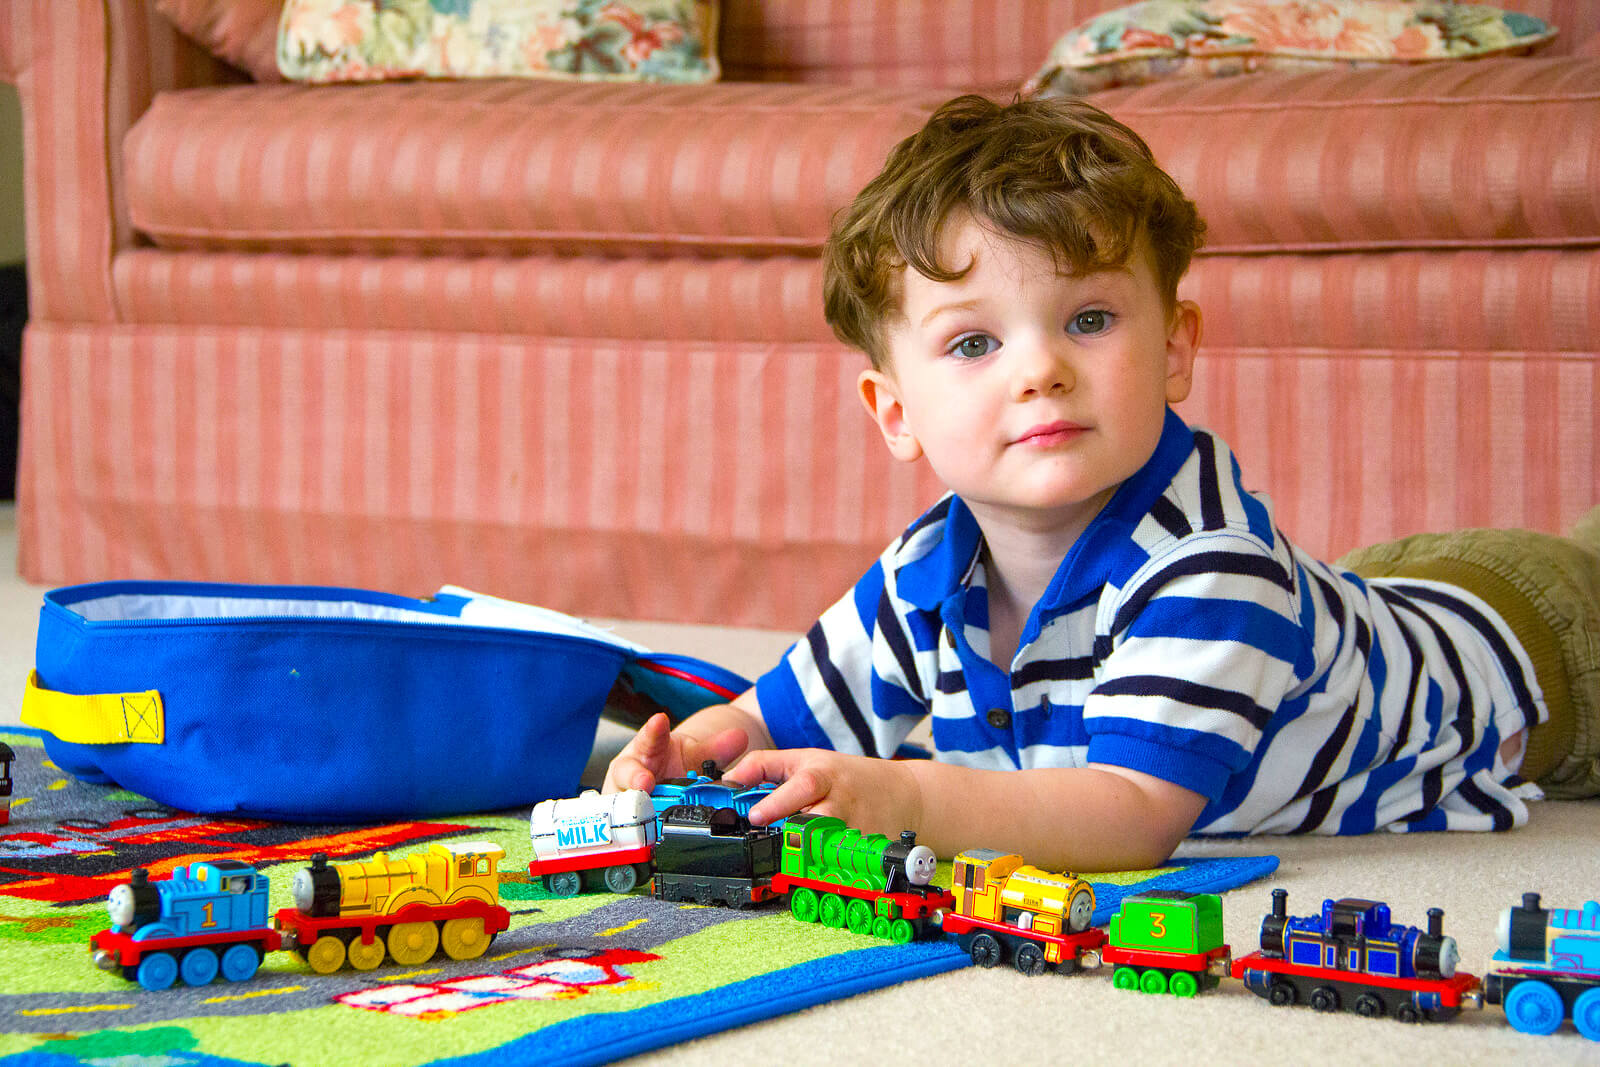 Boy with toy trains